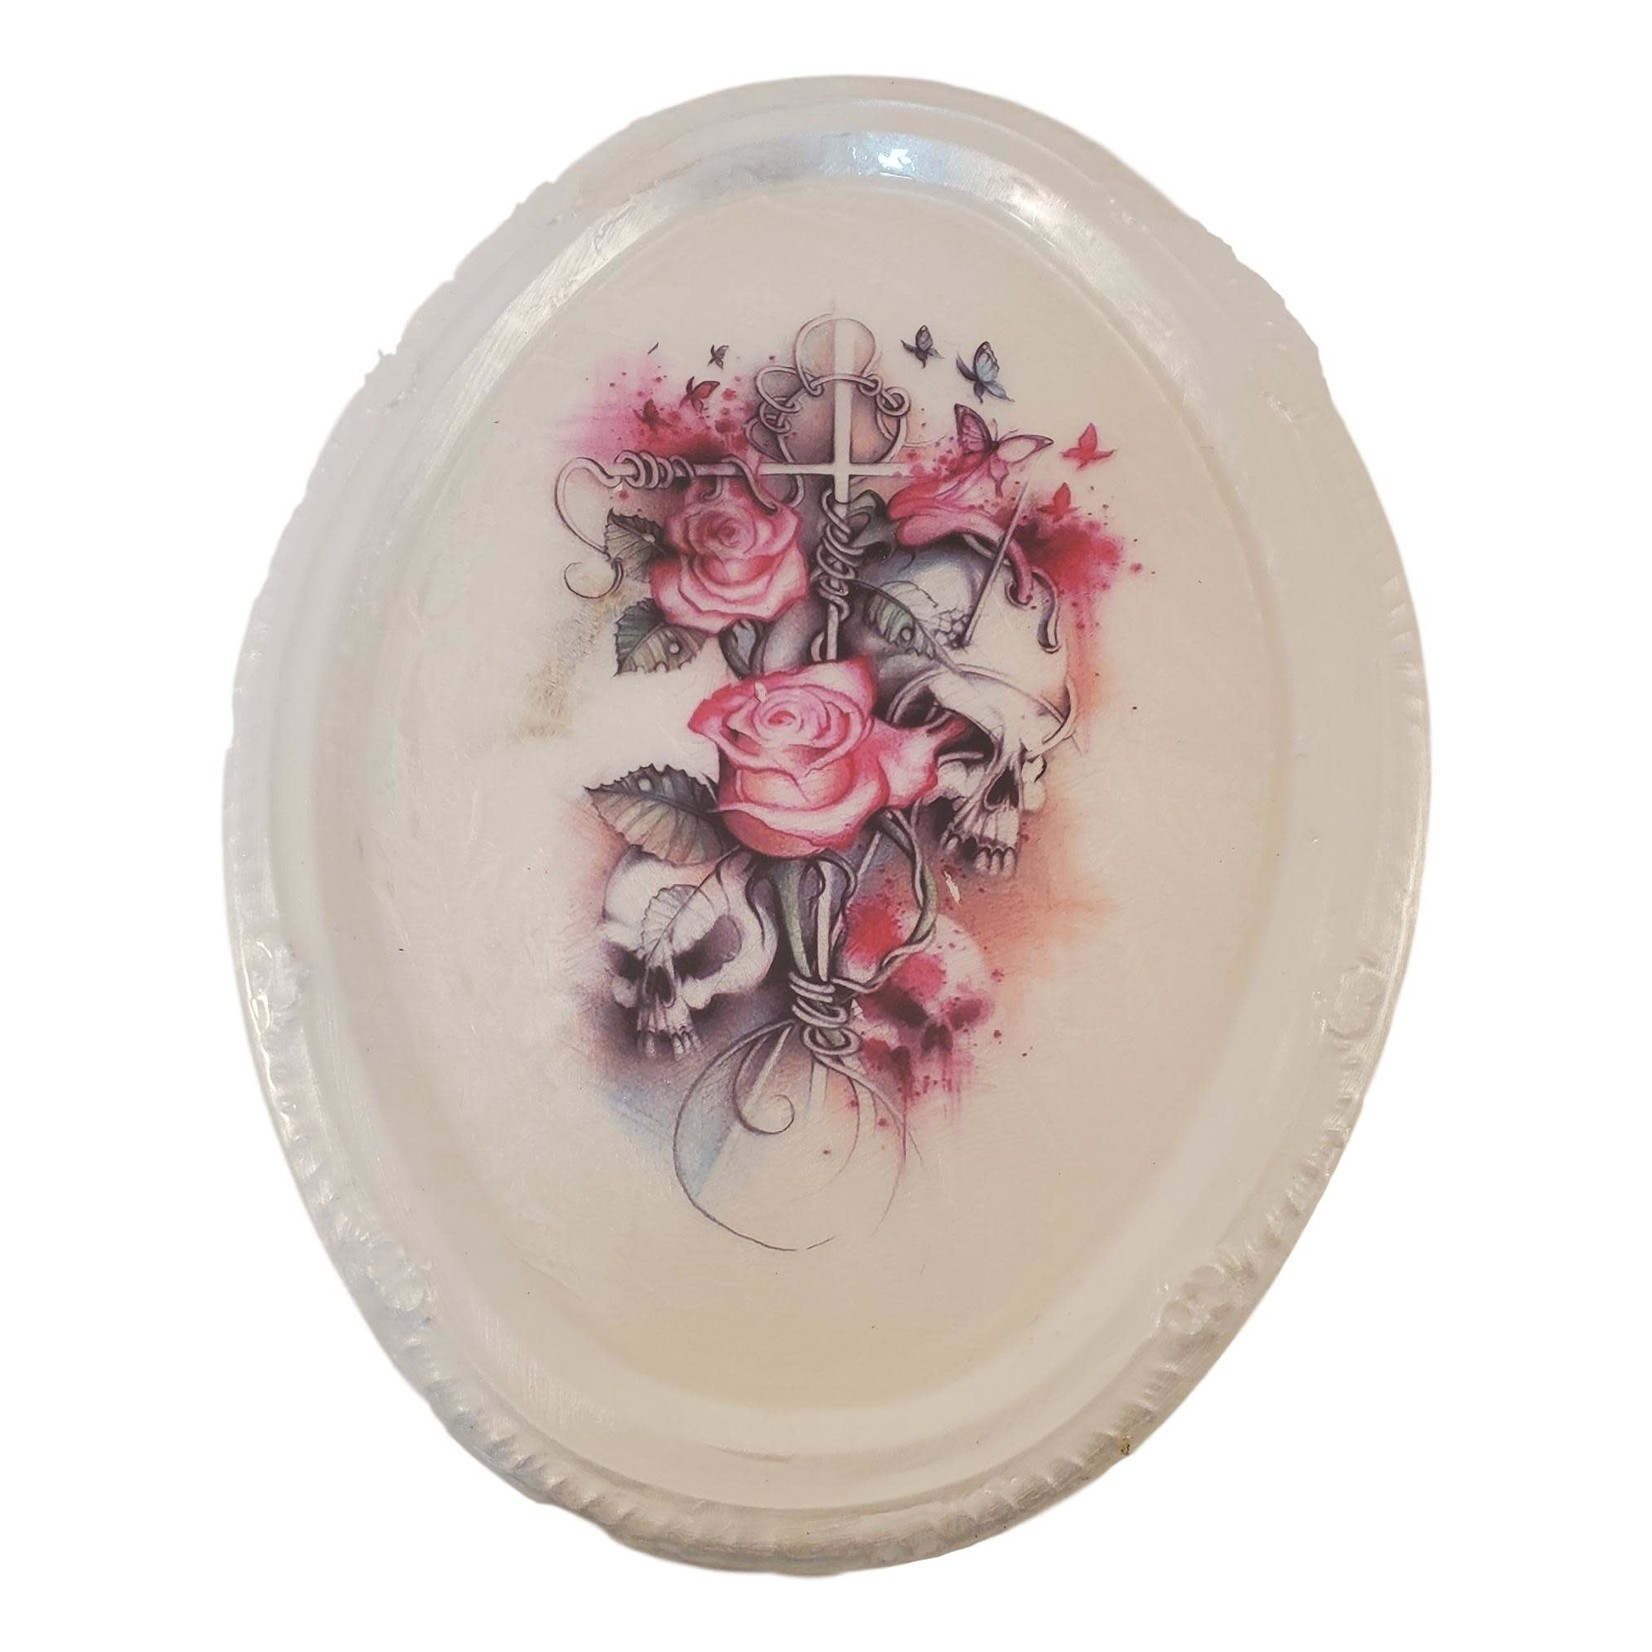 East Coast Sirens Rose and Skull Trinket / Rolling Tray